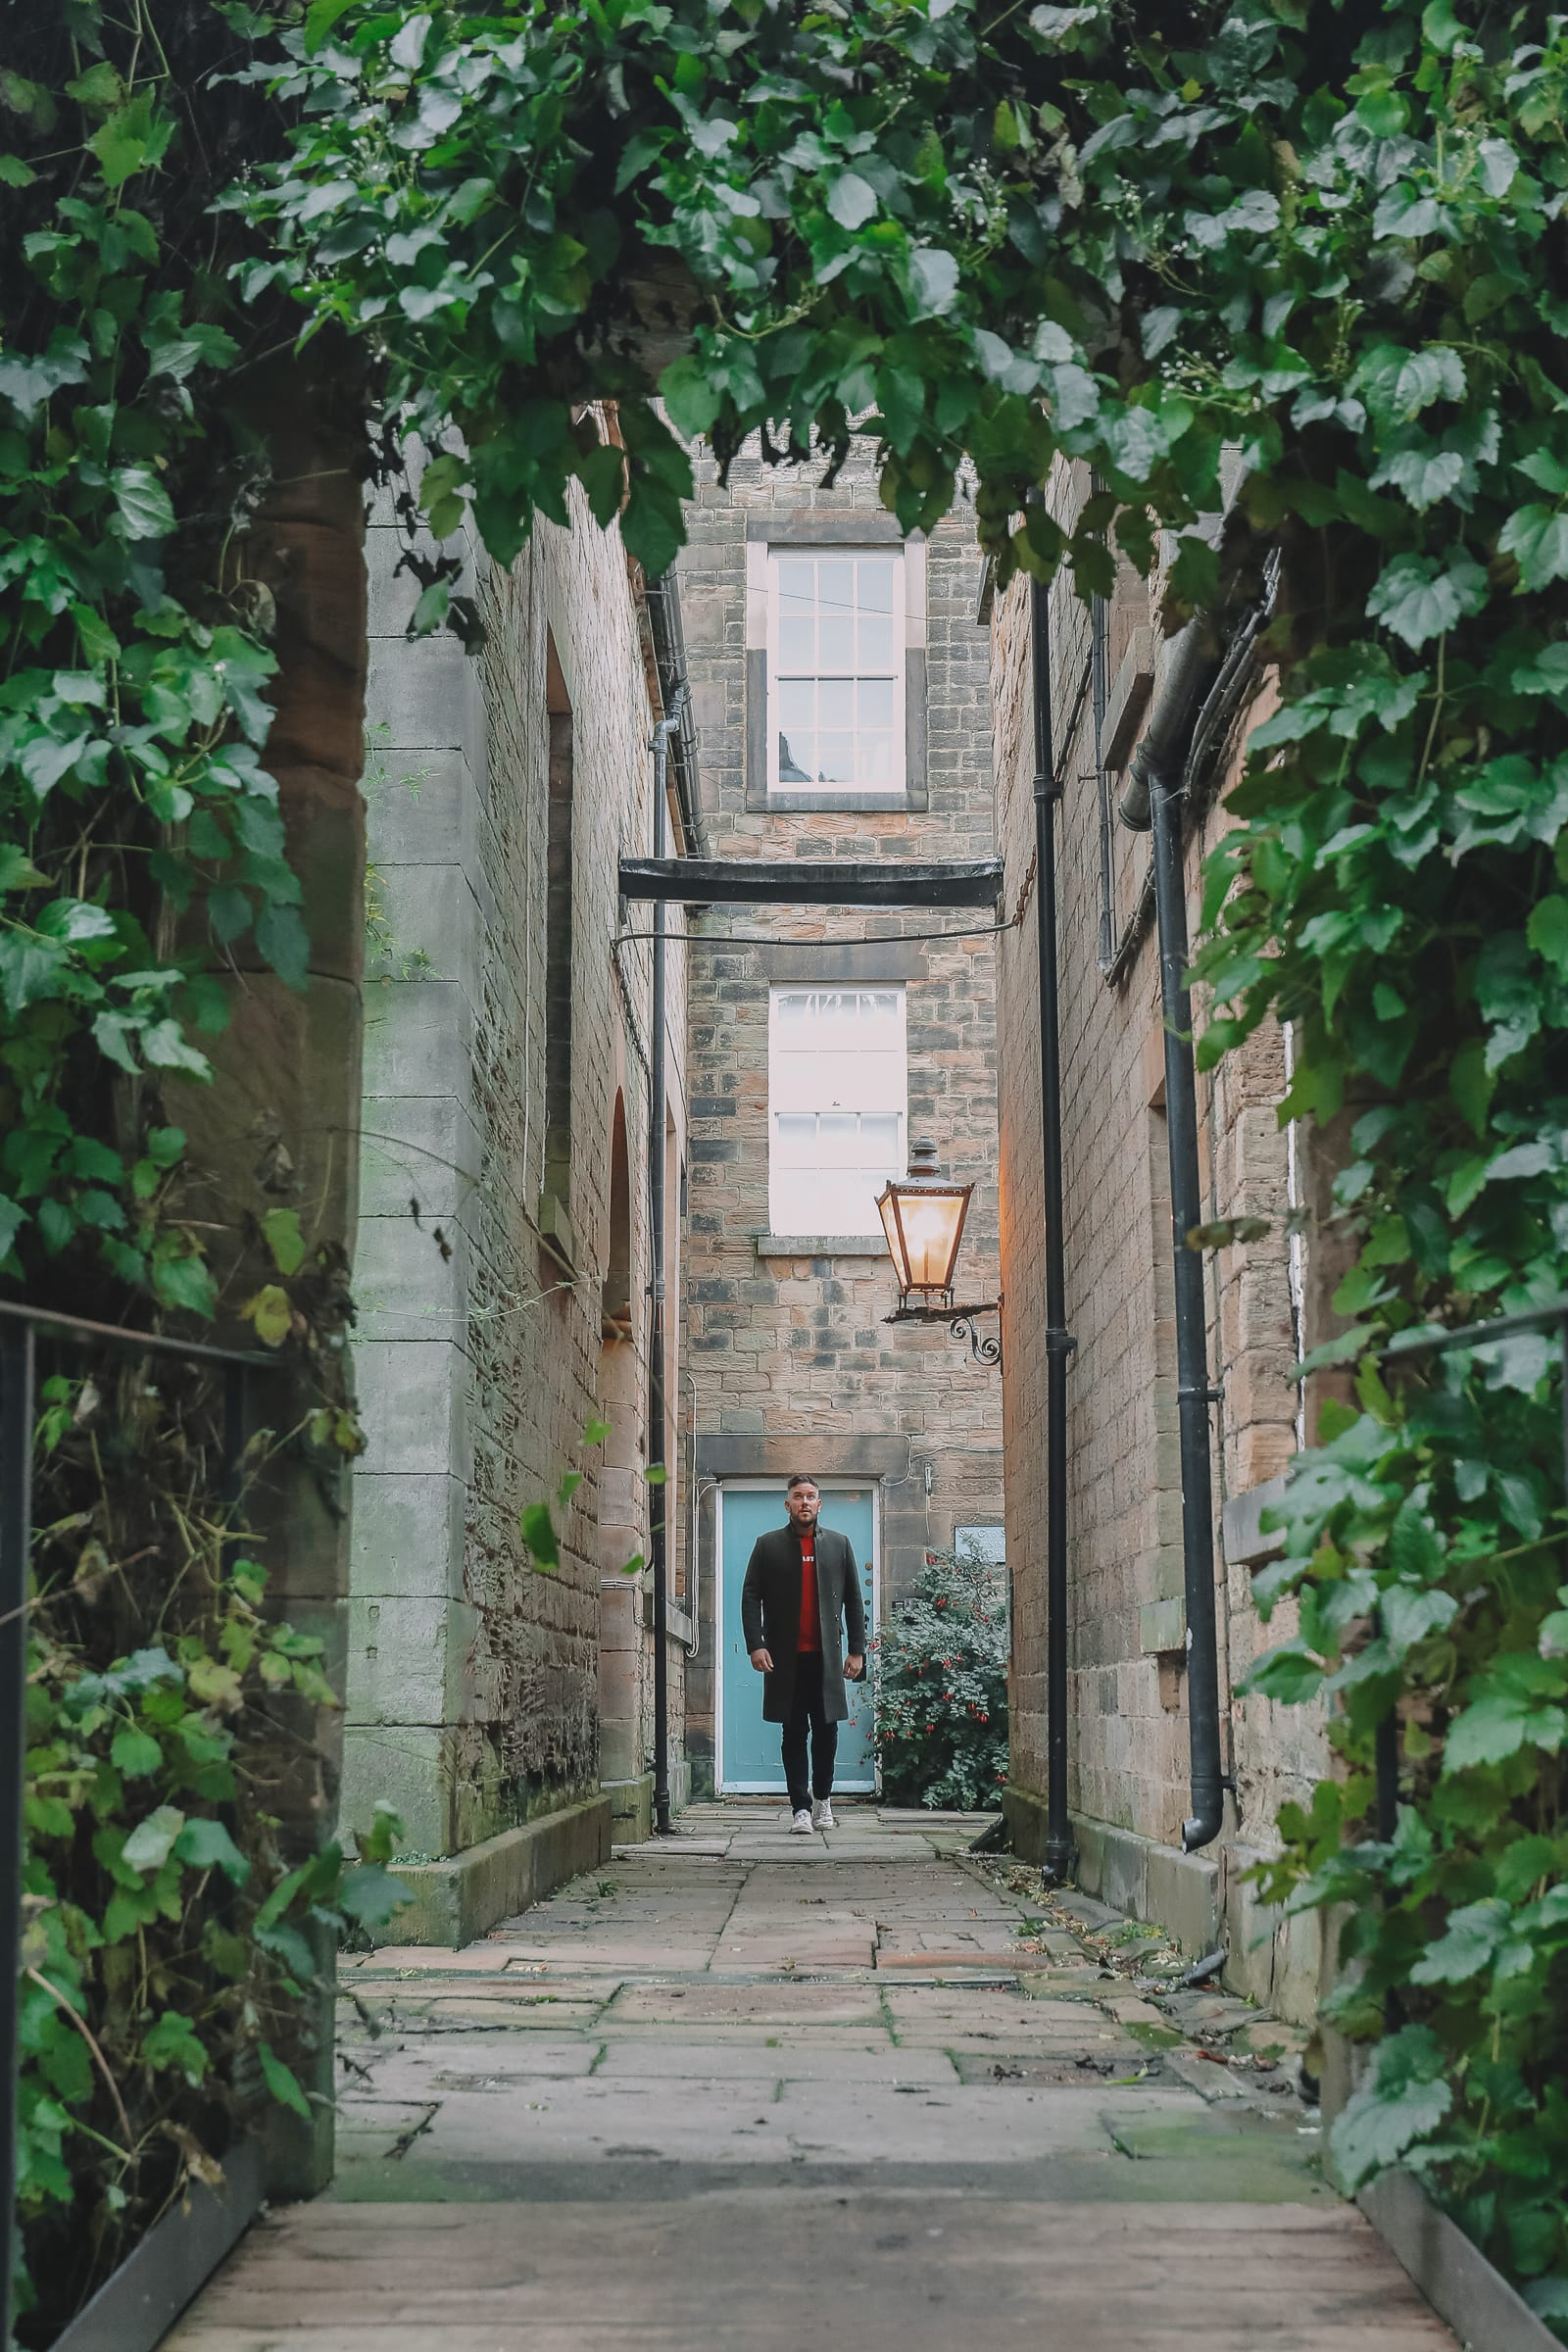 Finding Robin Hood's Bow And Safari Lodging In The Peak District, England (8)